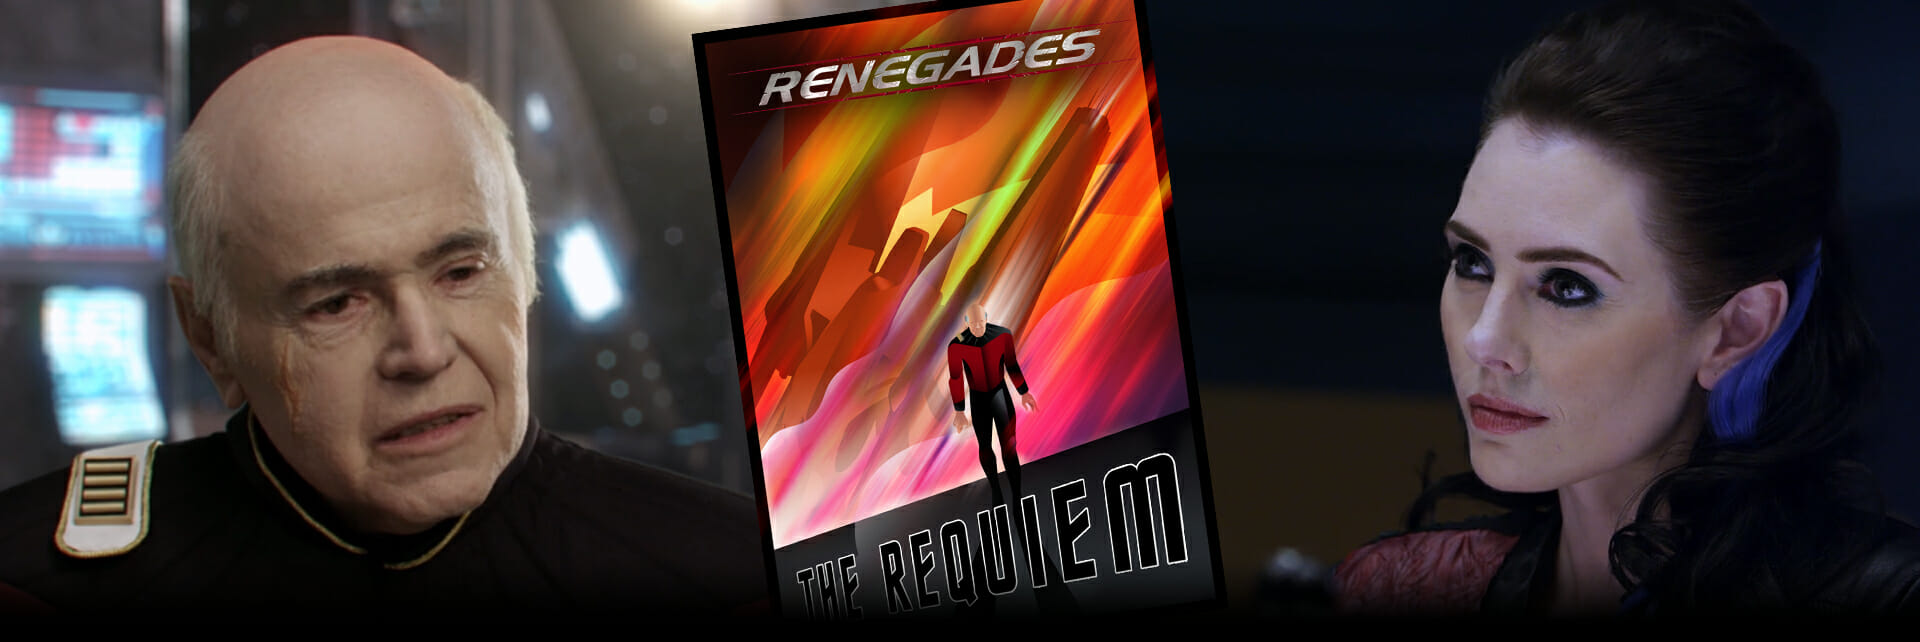 renegades the requ banner